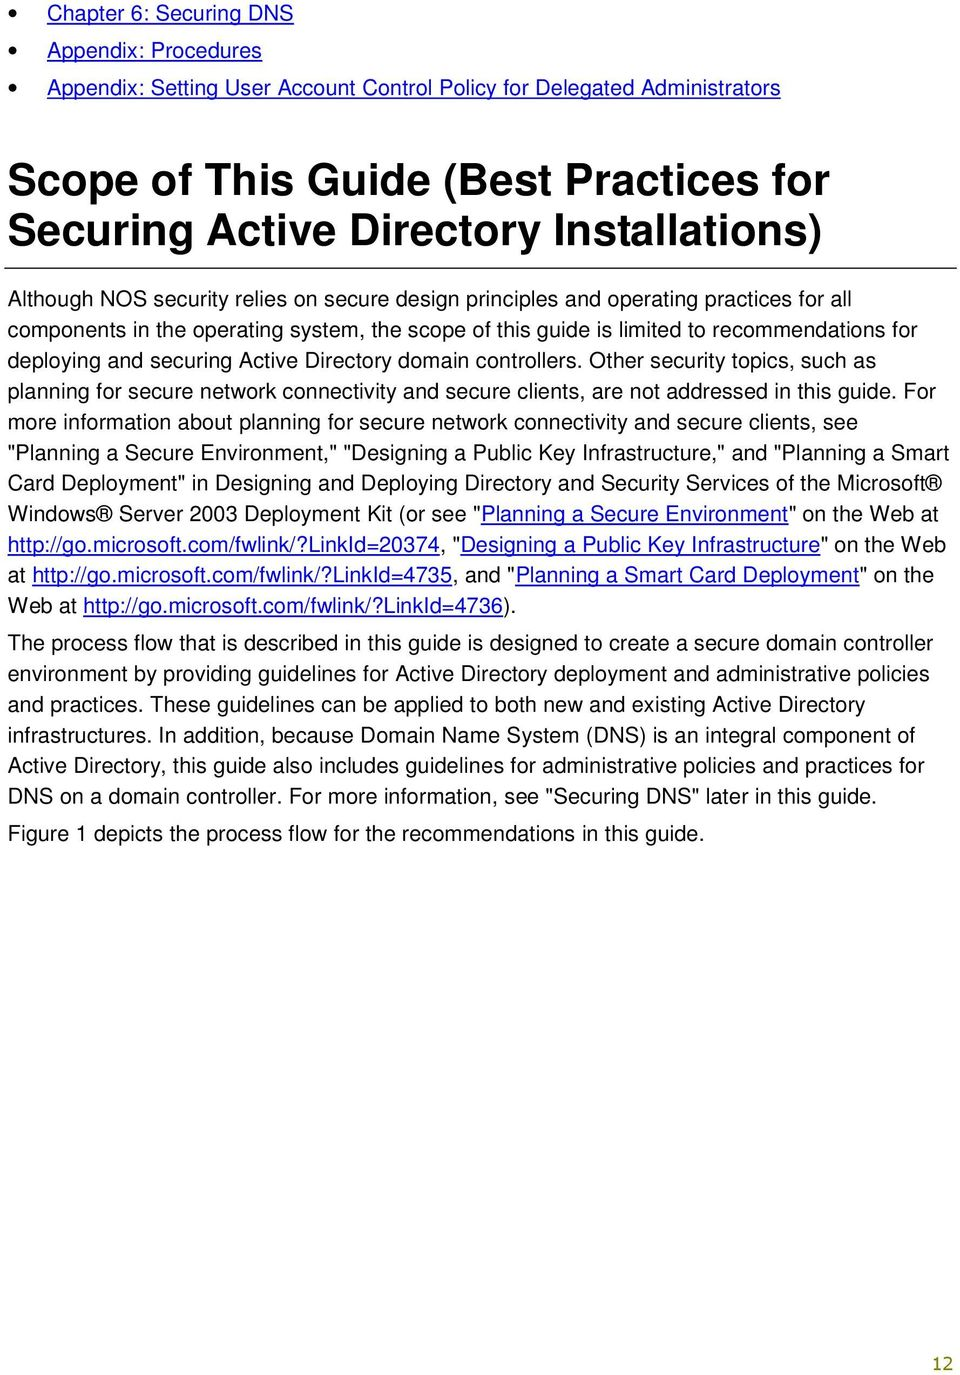 deploying and securing Active Directory domain controllers. Other security topics, such as planning for secure network connectivity and secure clients, are not addressed in this guide.